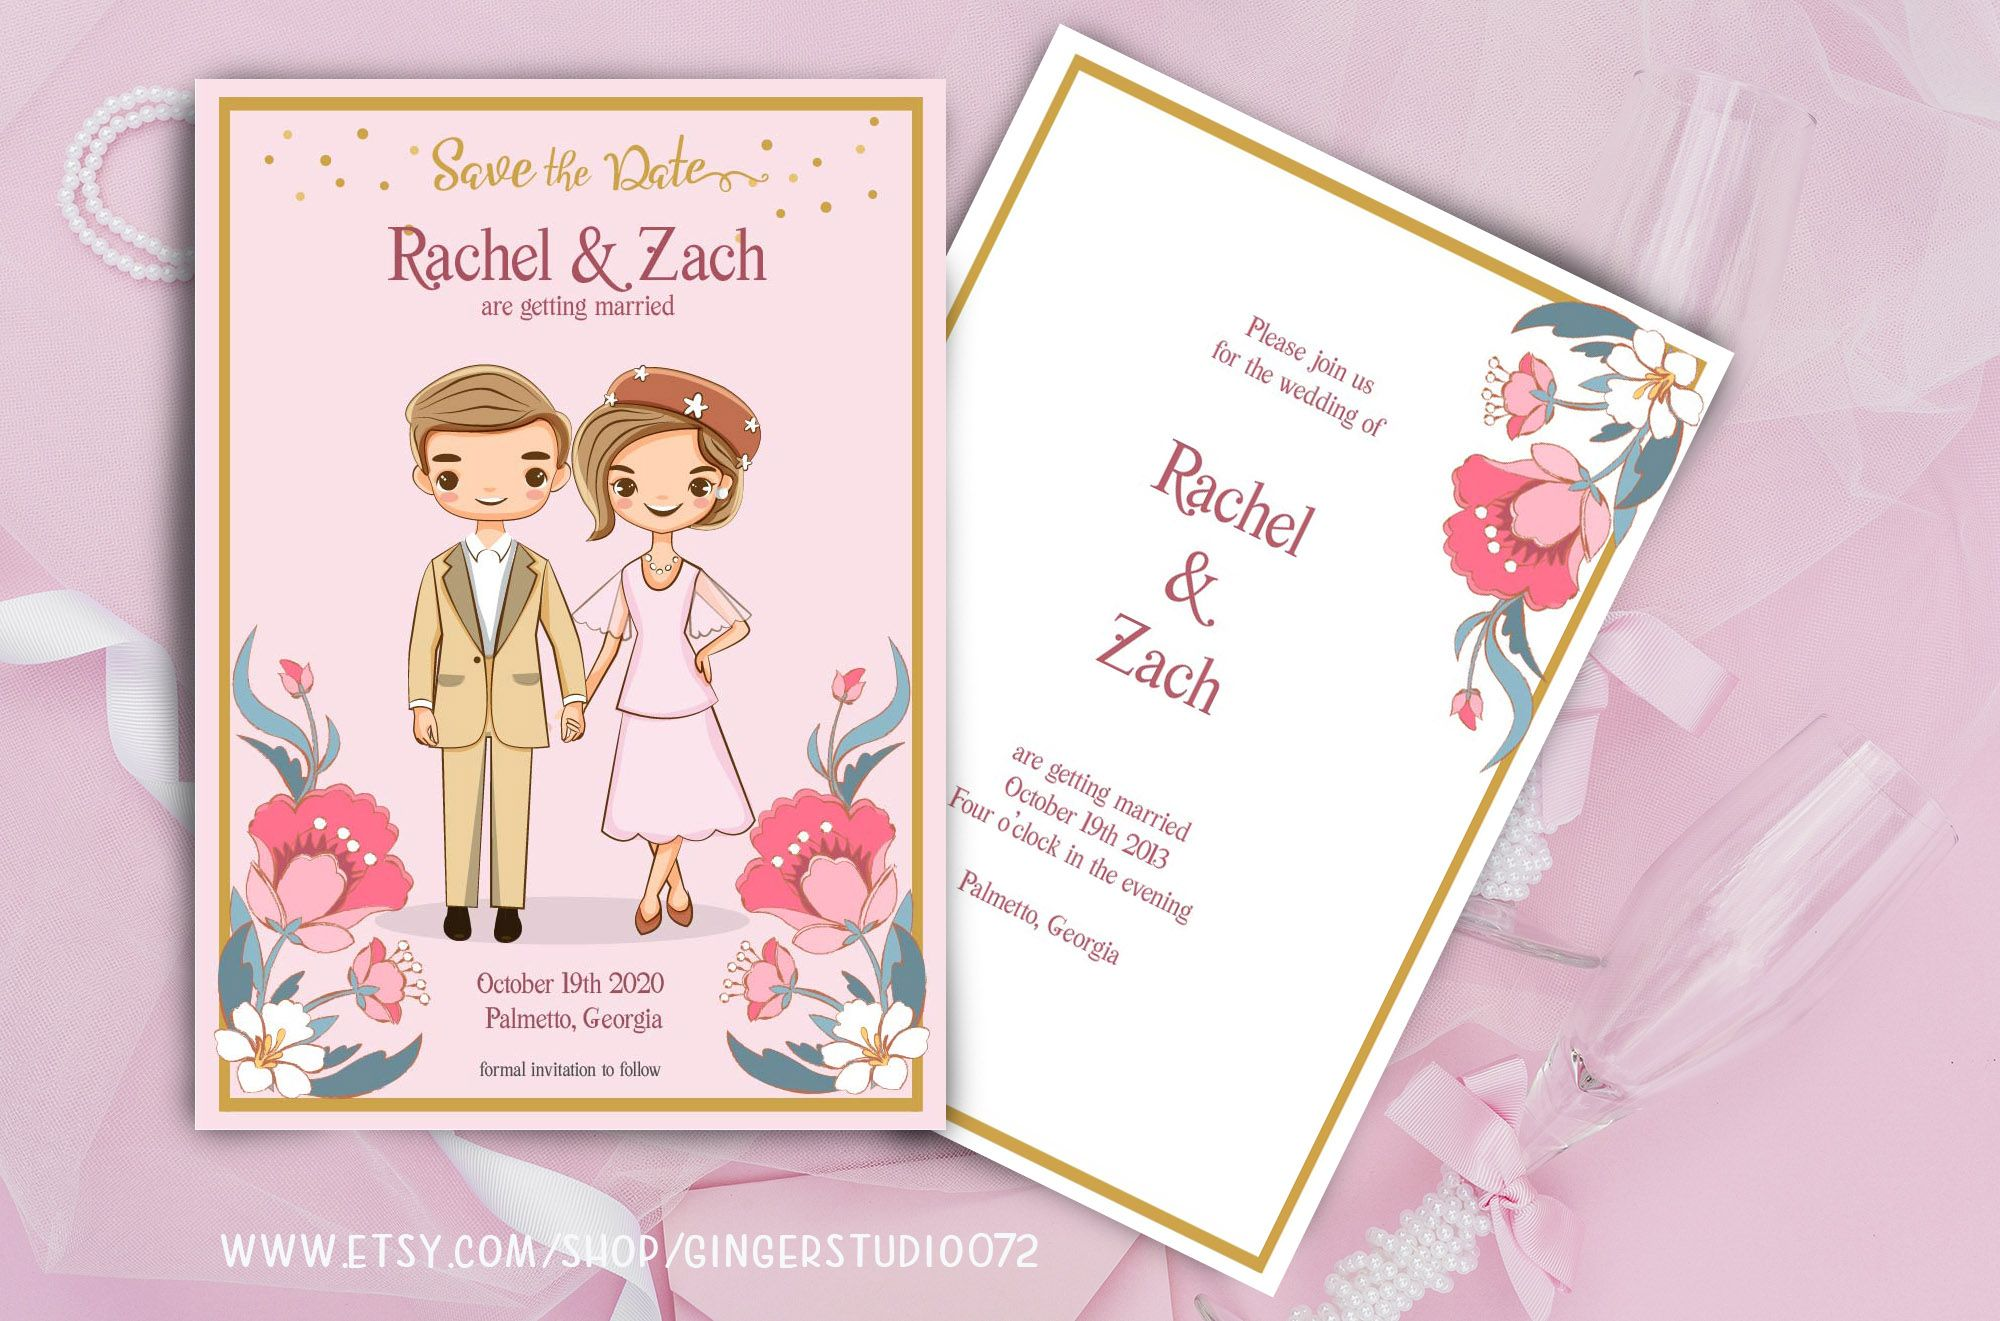 Diy Printable Editable Cute Wedding Invitation Card Template Etsy In 2020 Wedding Invitation Card Template Wedding Cards Wedding Invitation Cards